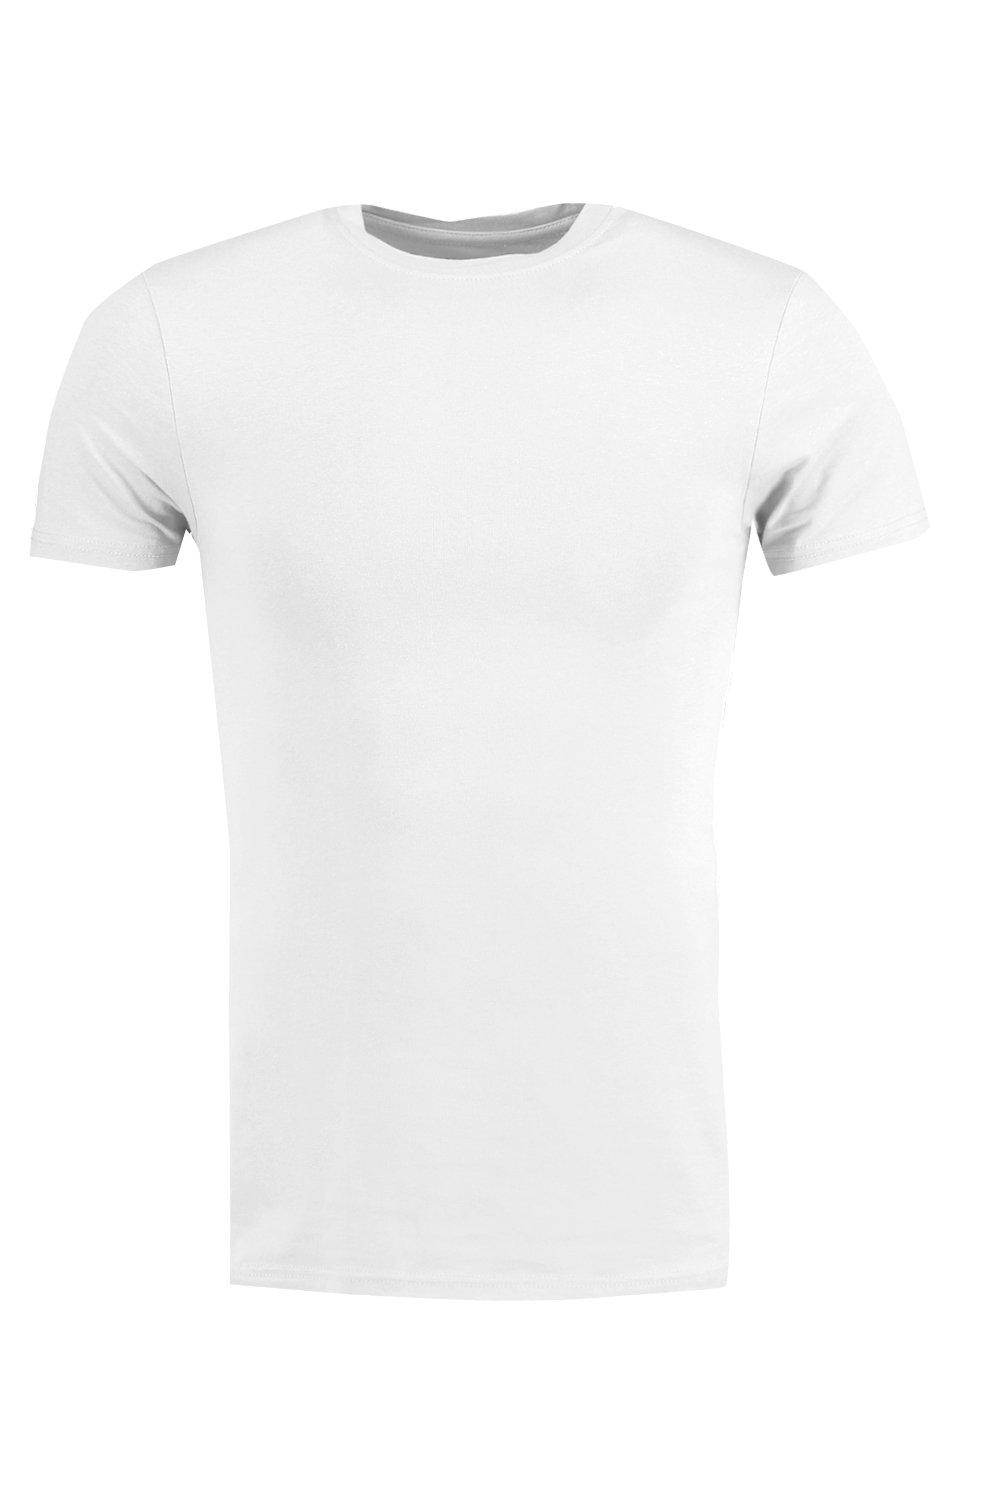 boohooMAN white Muscle Fit Crew Neck T Shirt